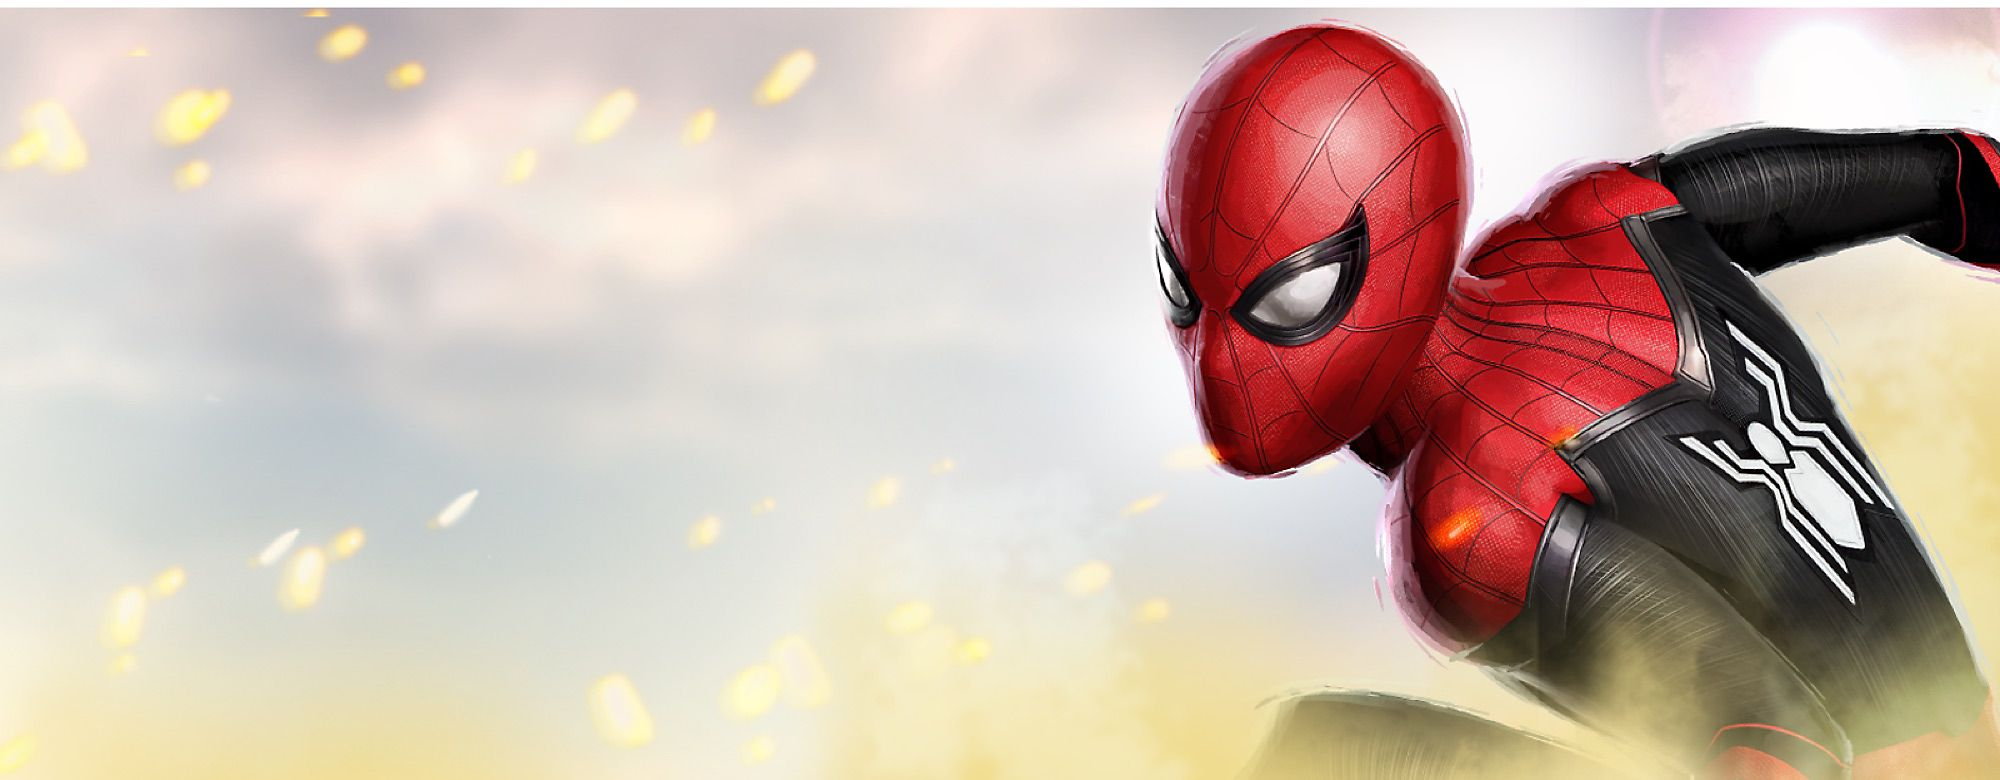 Spider-Man: Far From Home Peter Parker and his friends go on summer holiday to Europe, where Peter finds himself trying to save his friends against a villain known as Mysterio. Join the adventure with our action-packed collection of toys, costume, clothing and more.